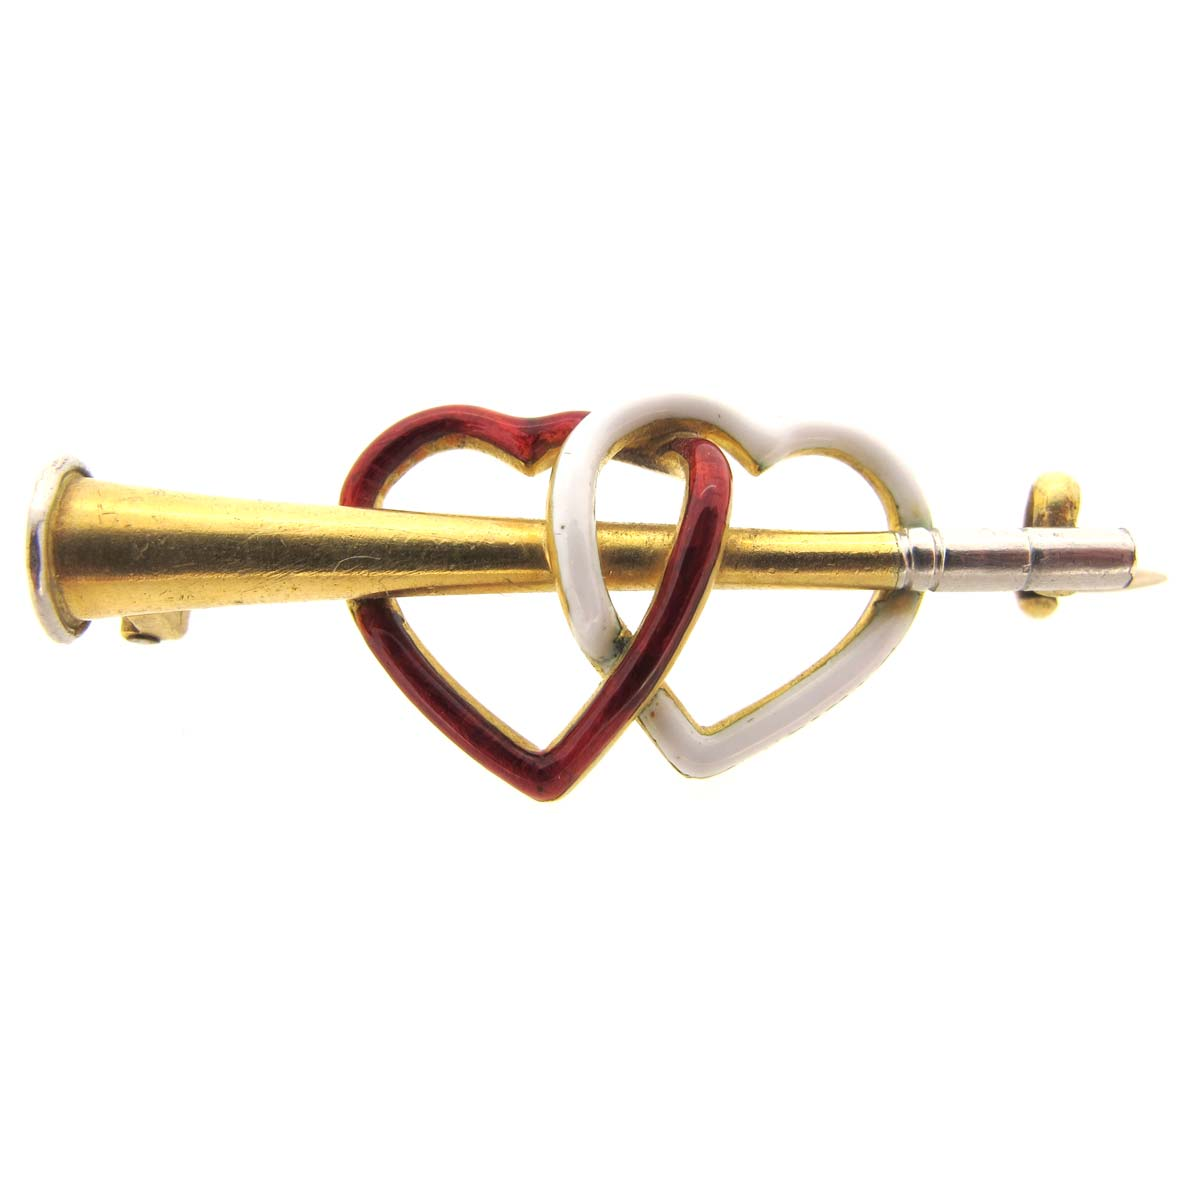 Antique gold & enamel heart brooch